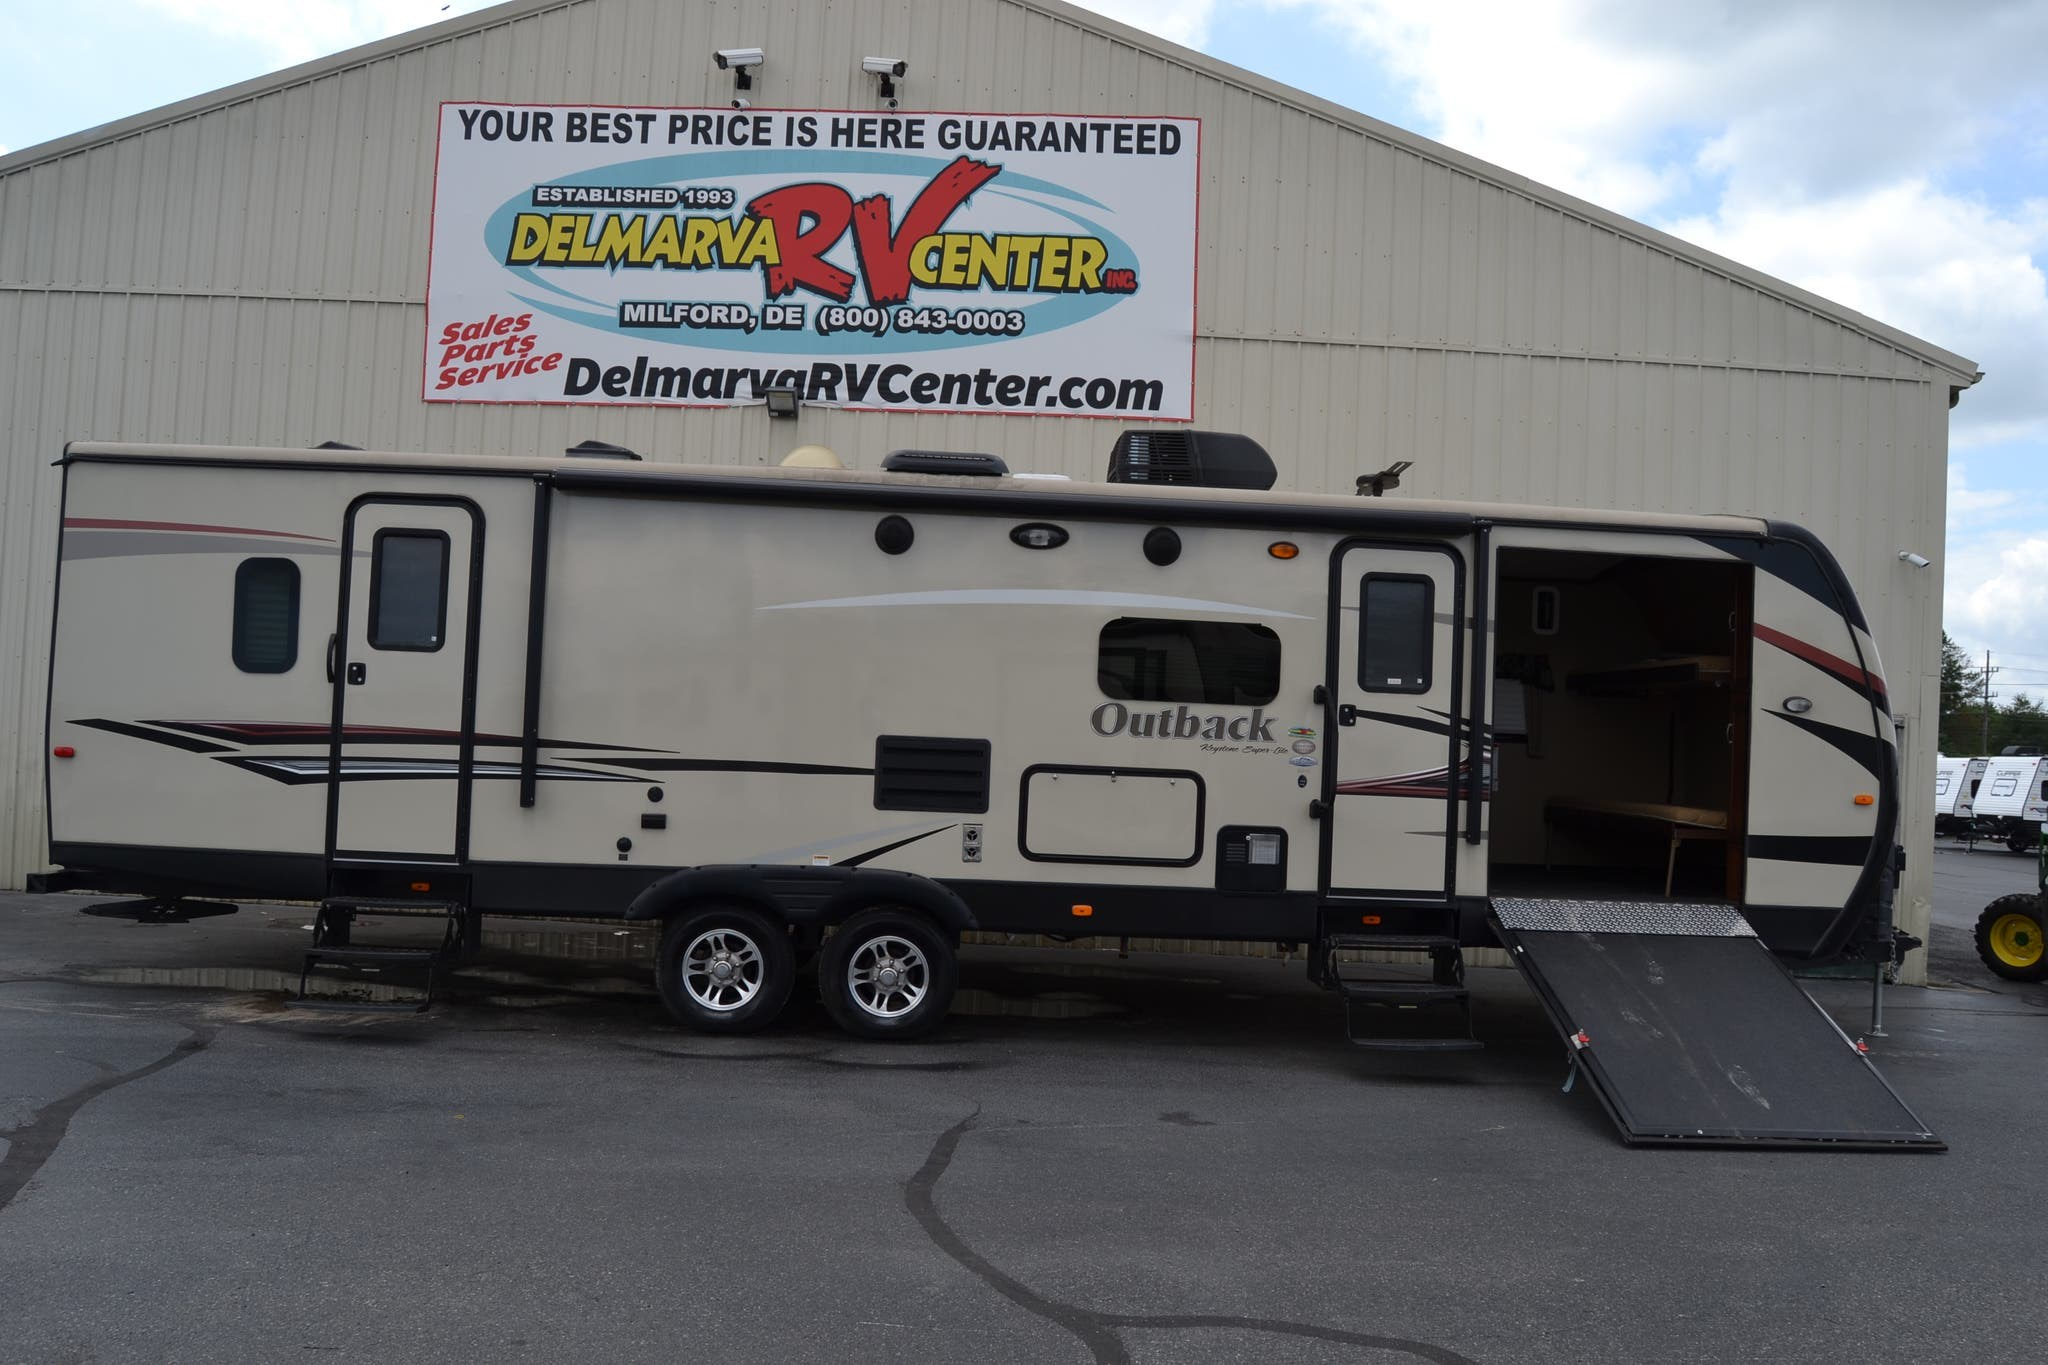 2014 Keystone RV Outback 310TB for Sale in Smyrna, DE 19977 | UM17109 |  RVUSA.com Classifieds